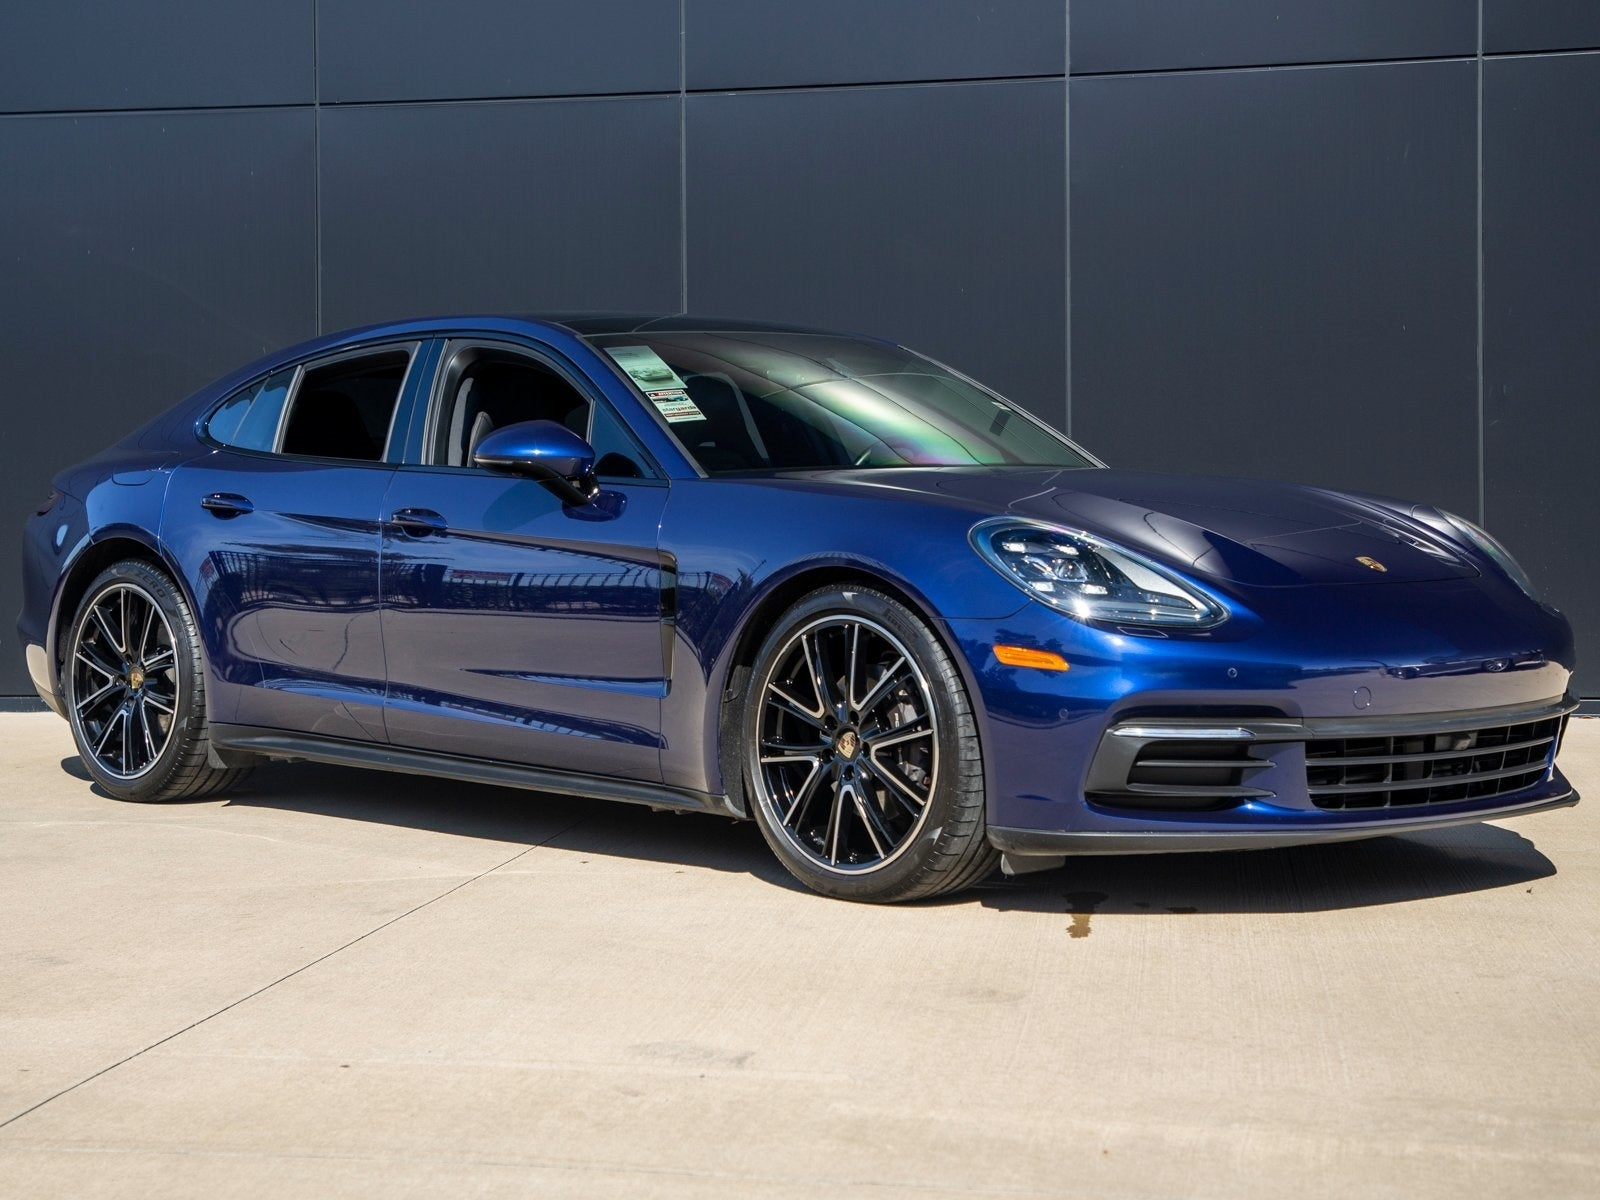 2020 Porsche Panamera Service Loaner Rancho Mirage Ca Cathedral City Palm Desert Palm Springs California Wp0aa2a74ll102543